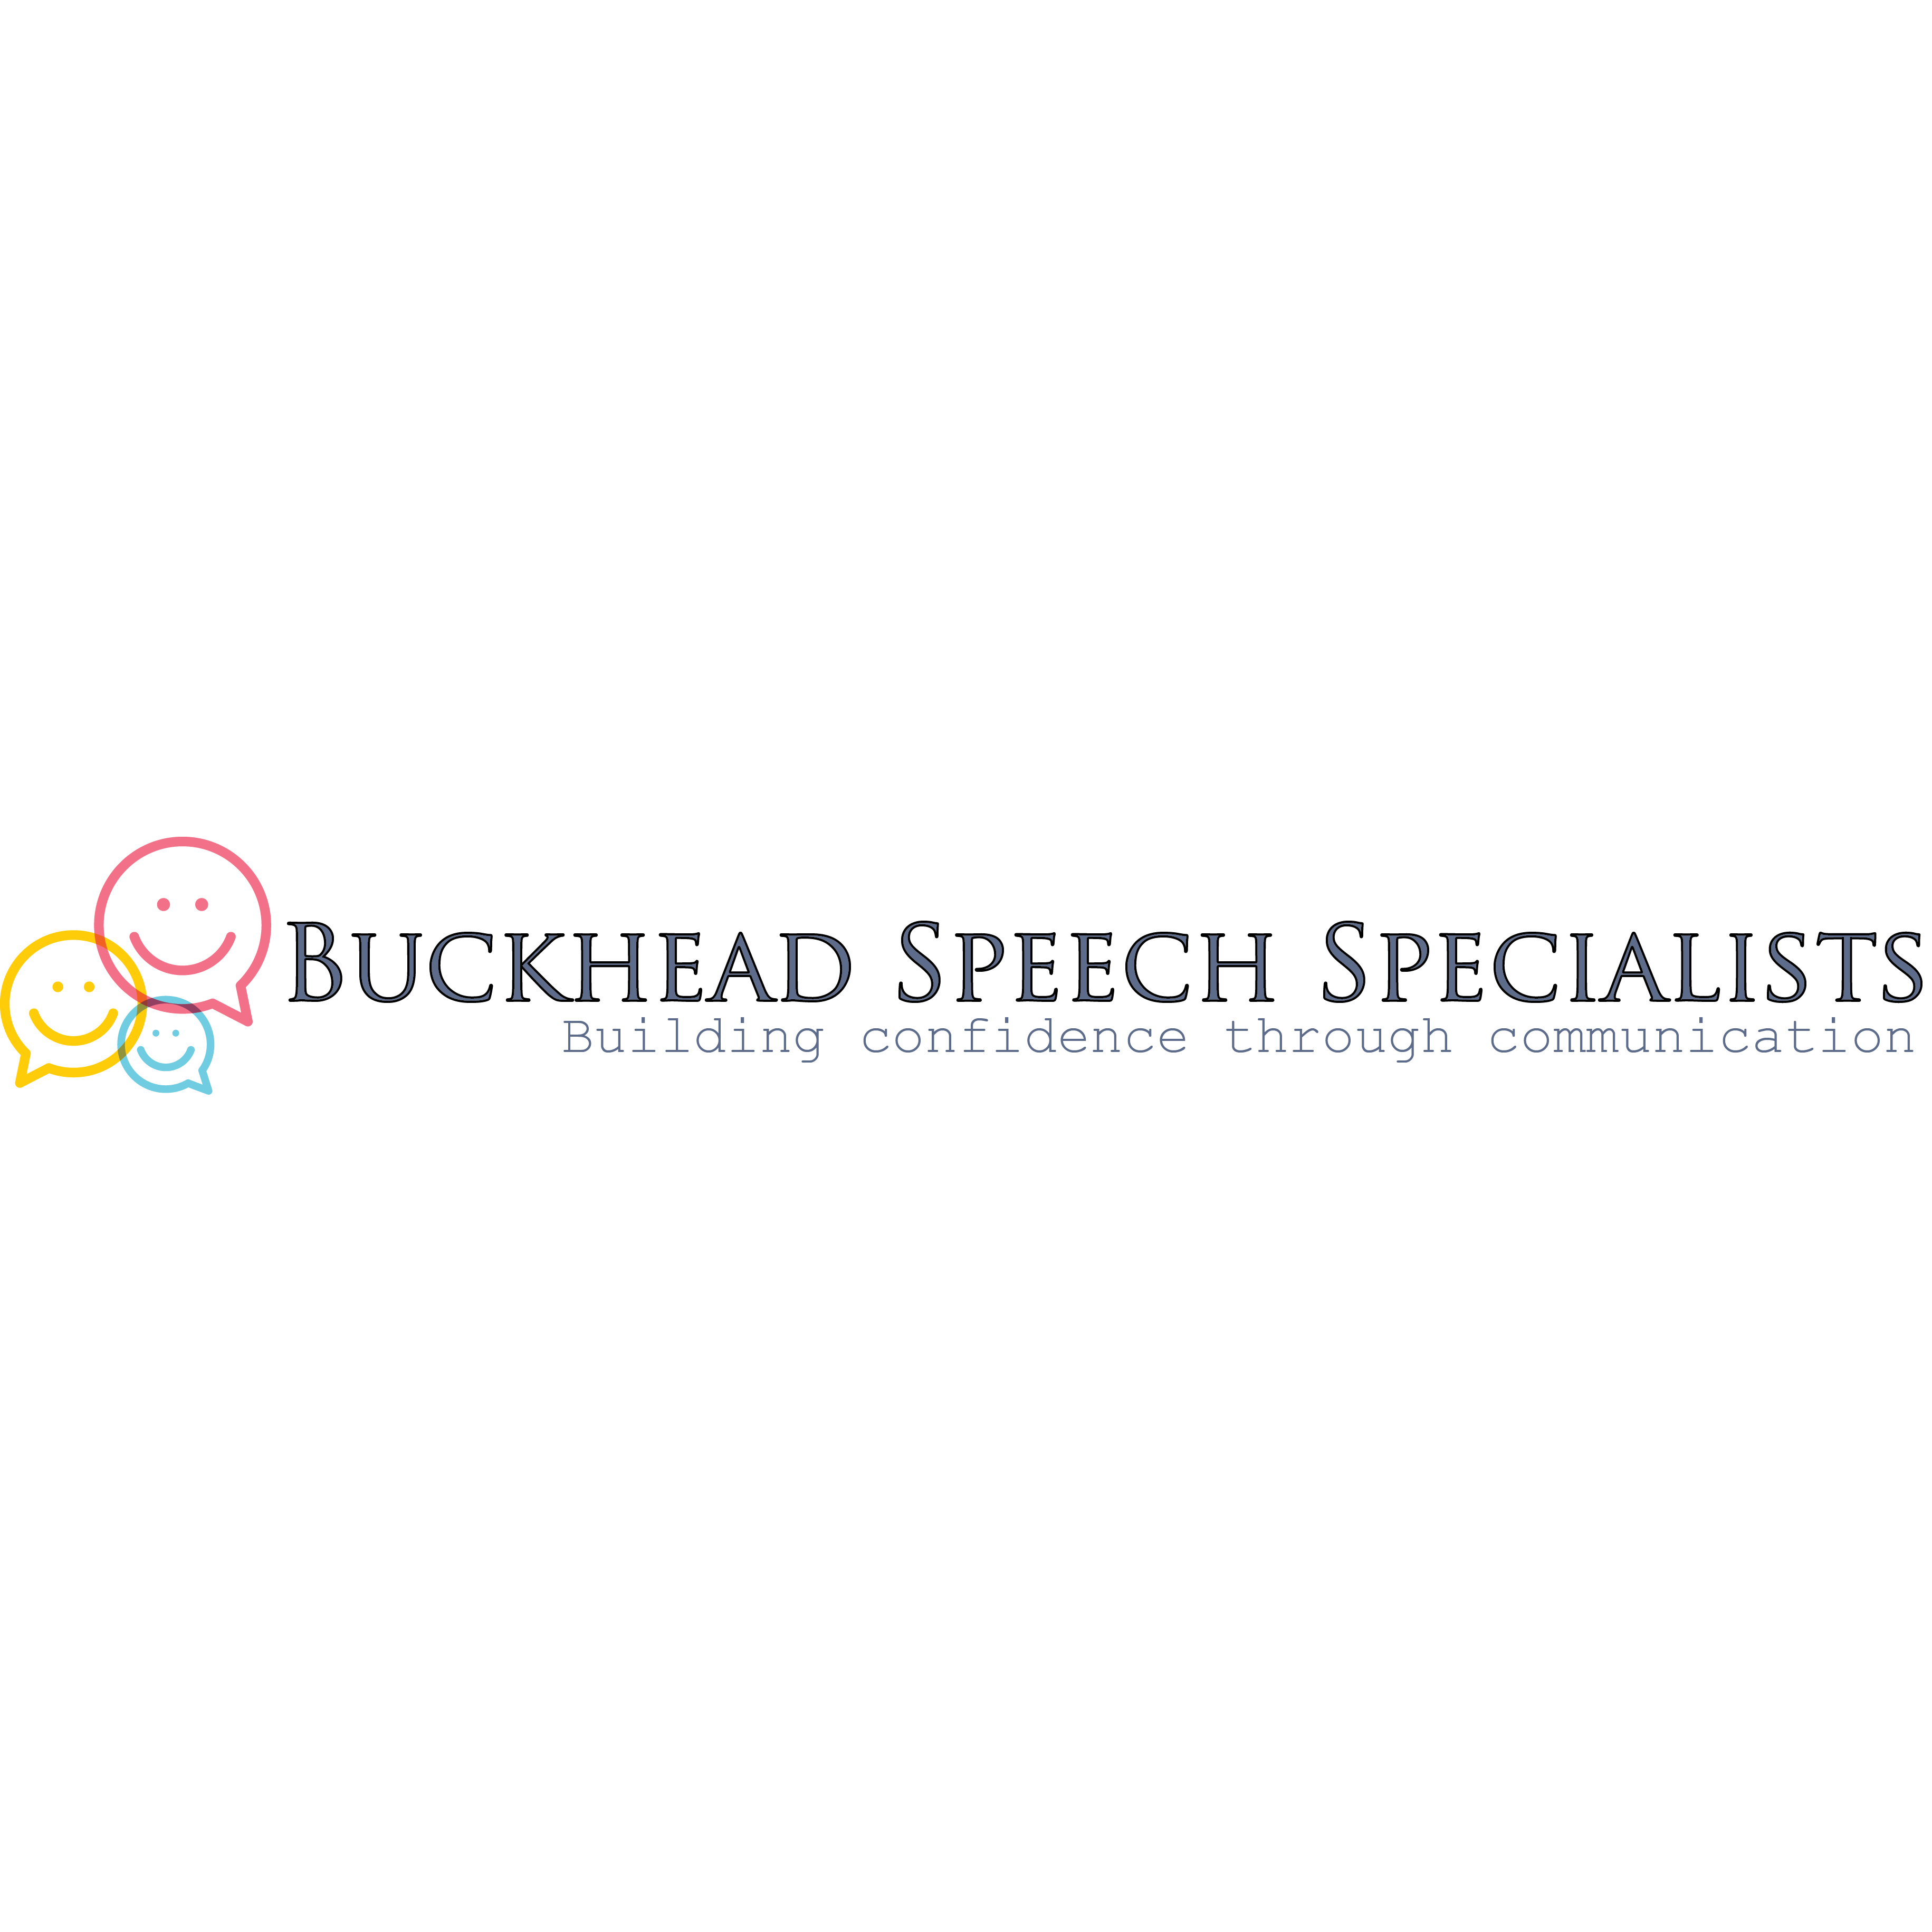 Buckhead Speech Specialists image 8